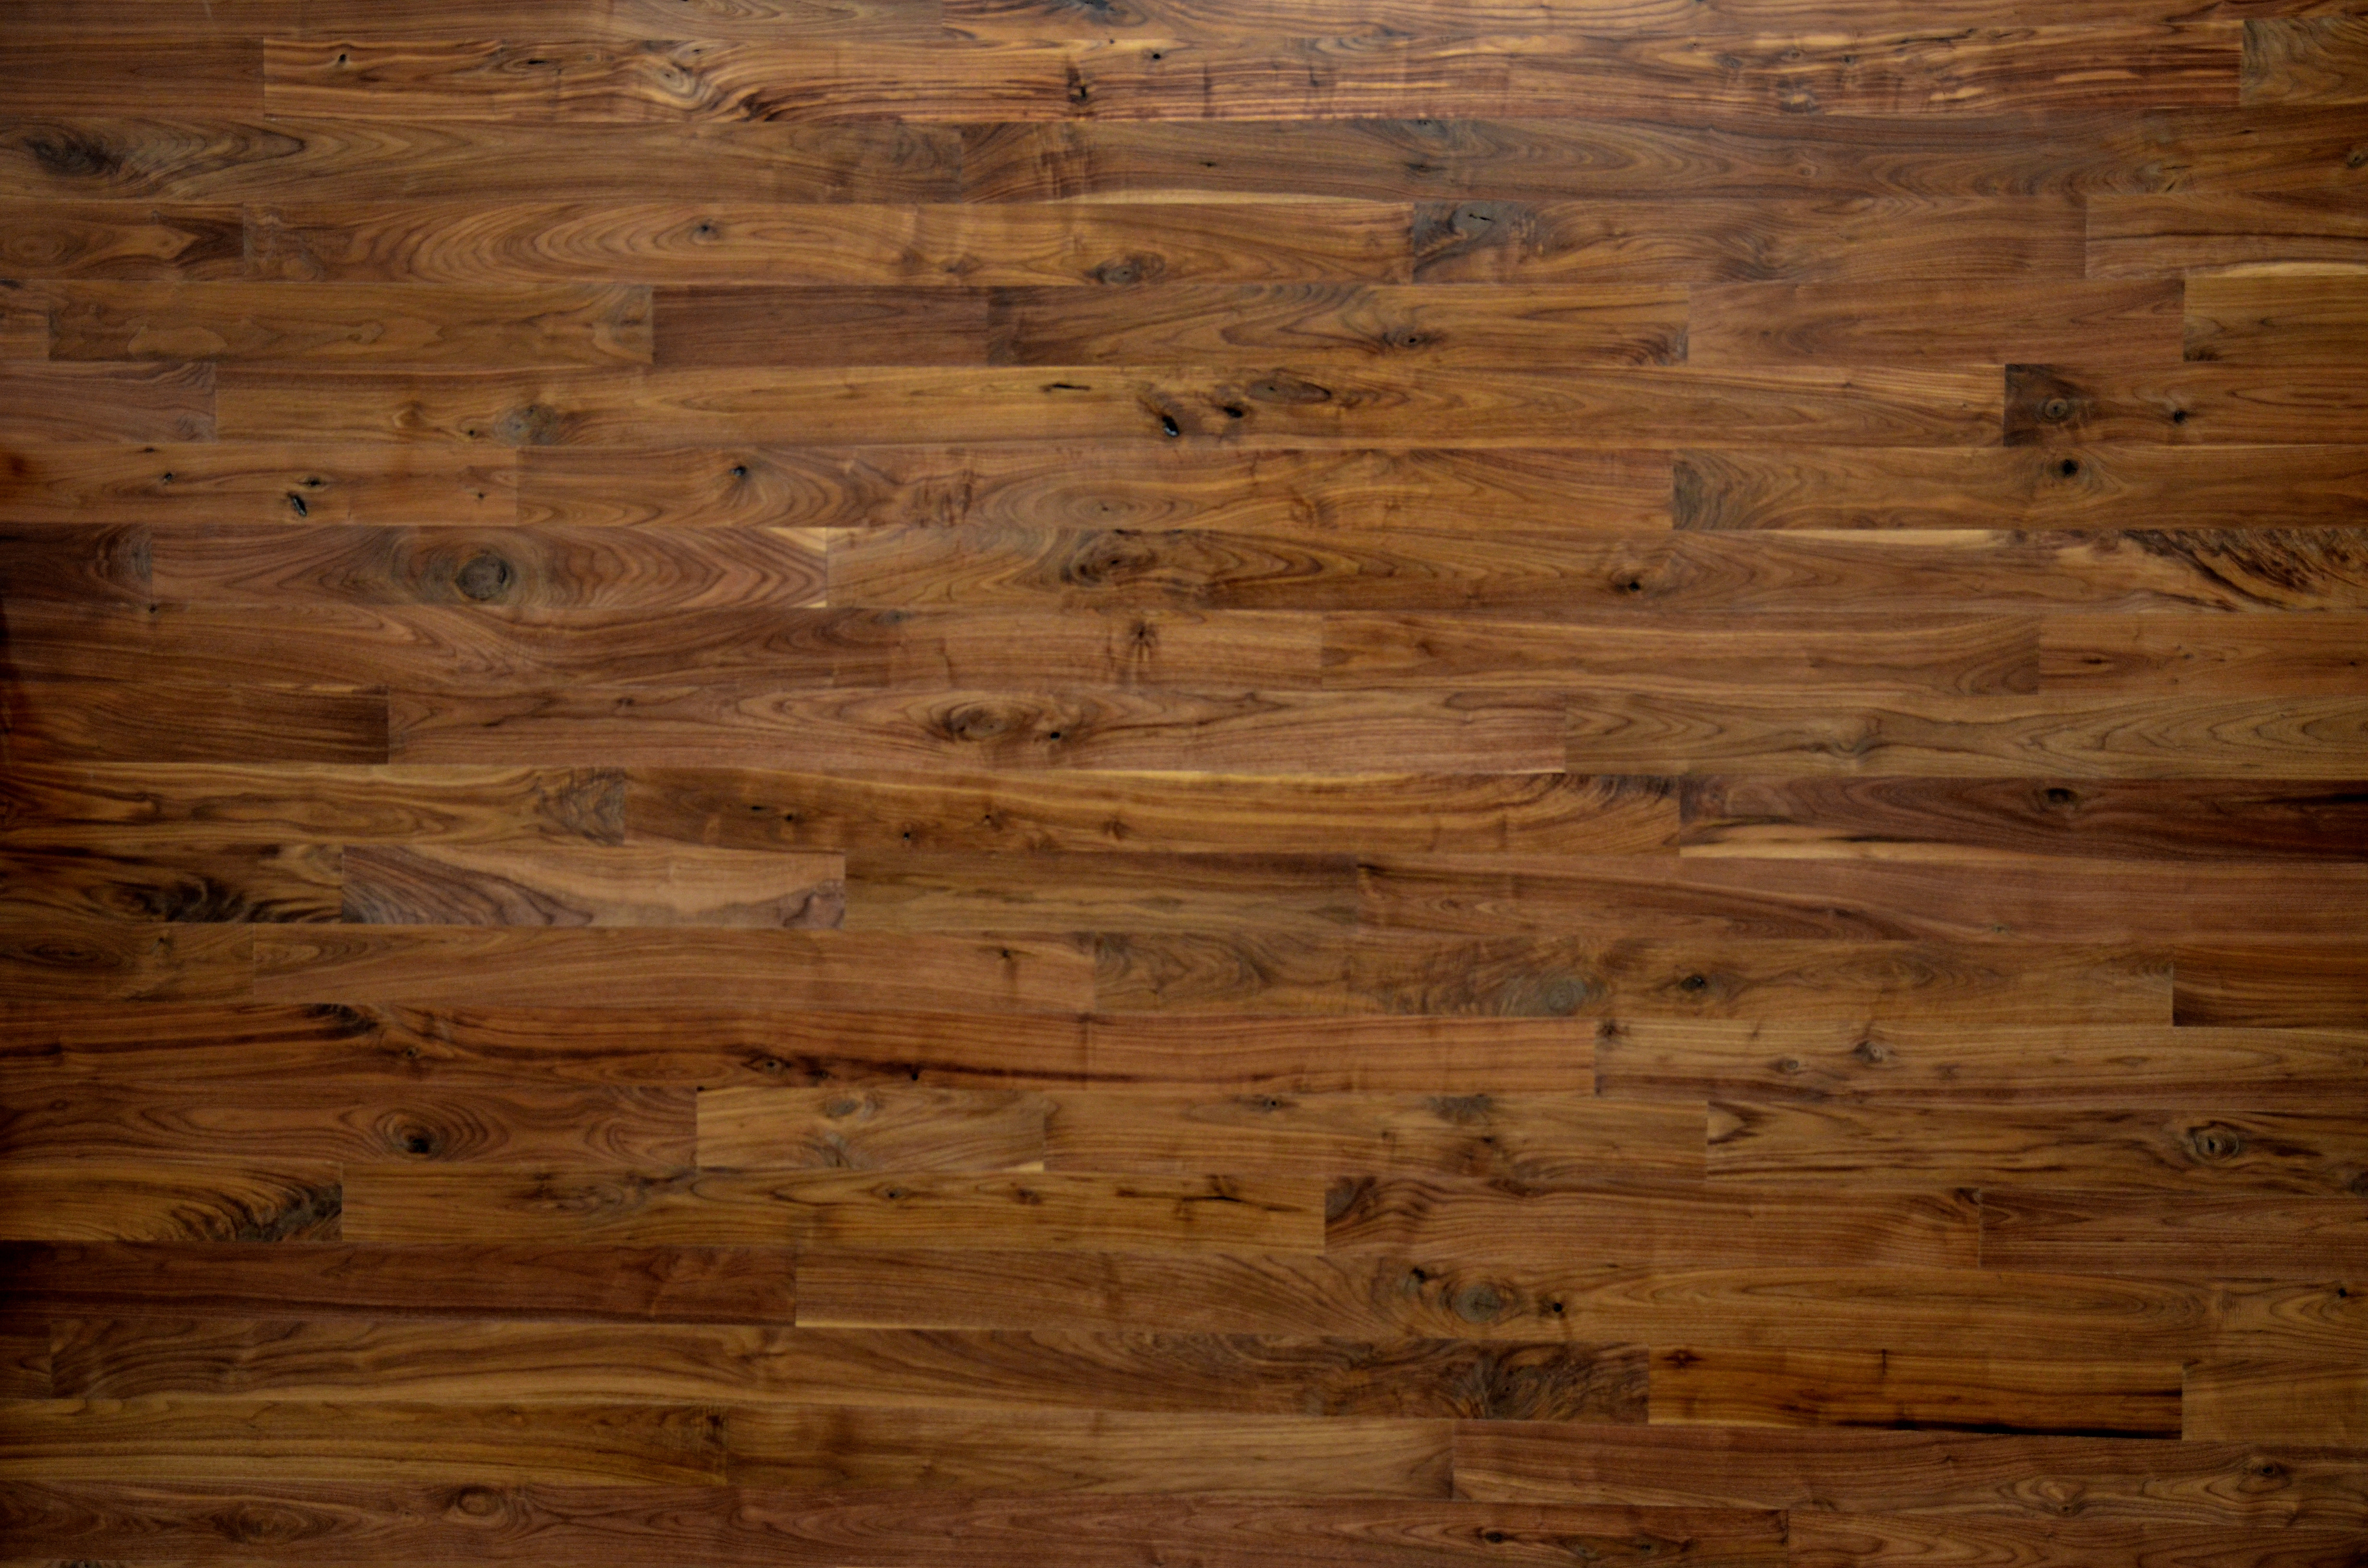 how much does labor cost to install hardwood floors of lacrosse hardwood flooring walnut white oak red oak hickory with regard to natual walnut a truly beautiful product created and perfected by lacrosse hardwood flooring